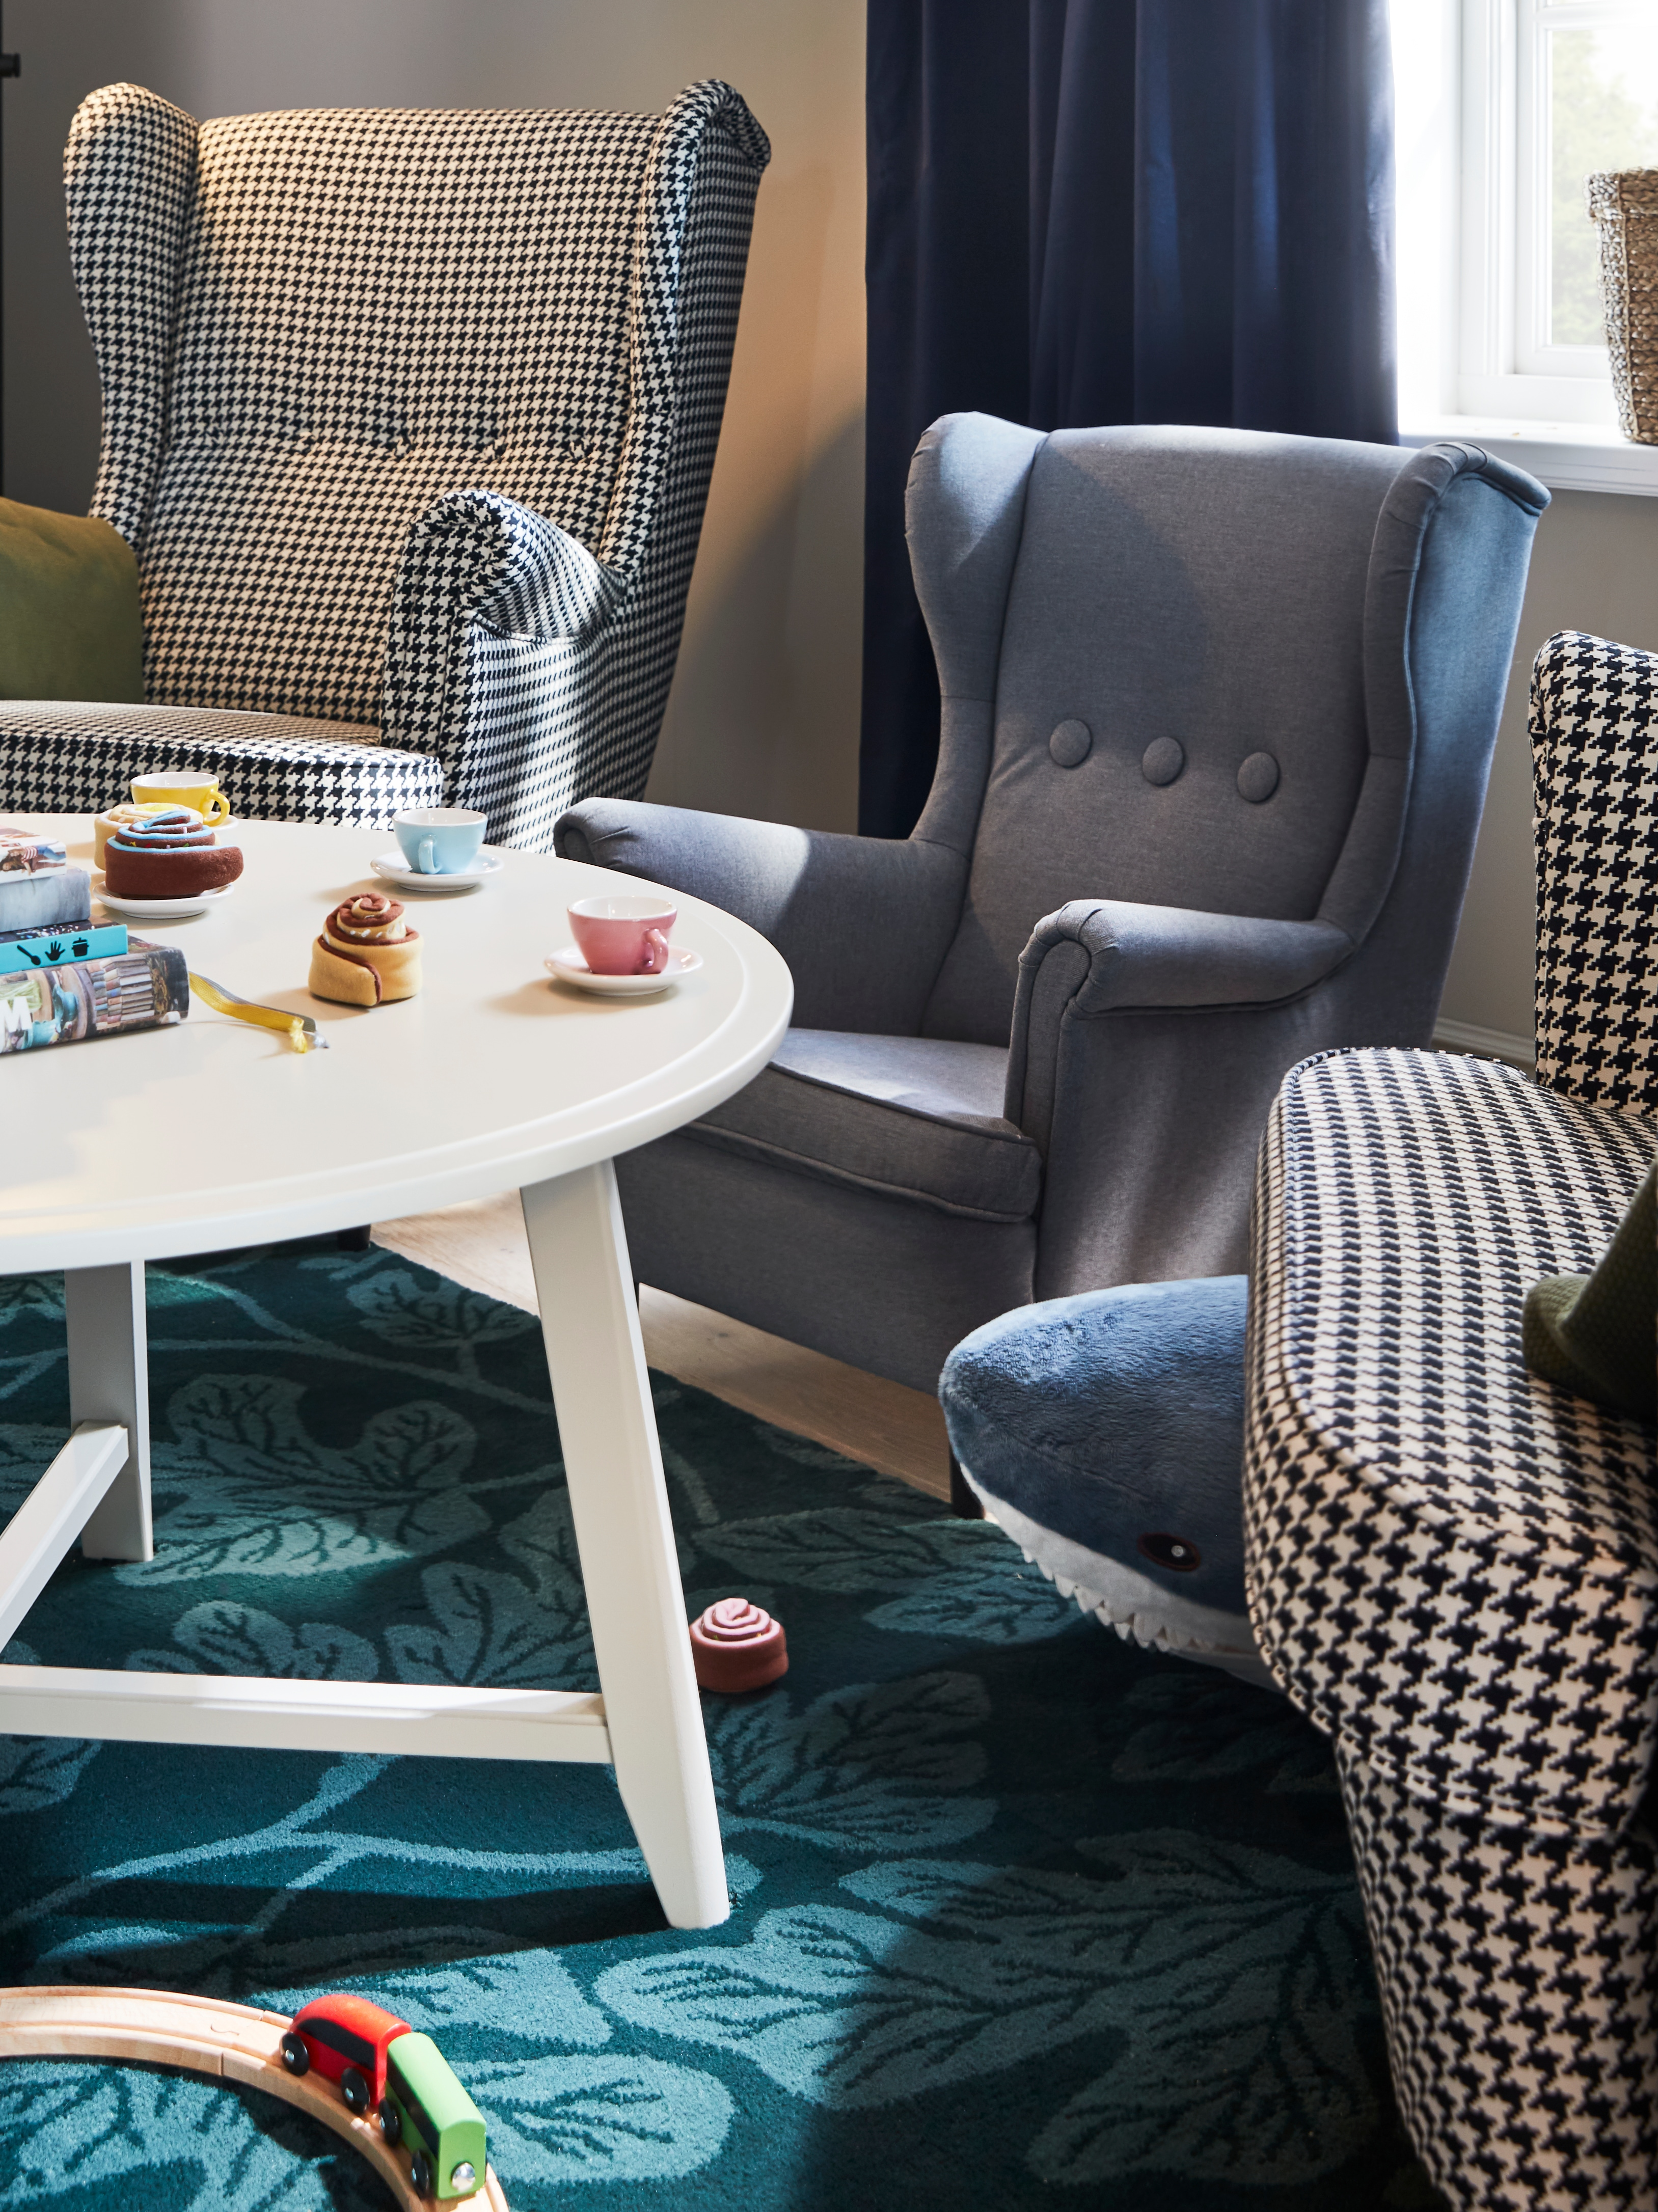 Two wing chairs and a miniature children's armchair are by a light beige round KRAGSTA table with pretend tea and cake on it.